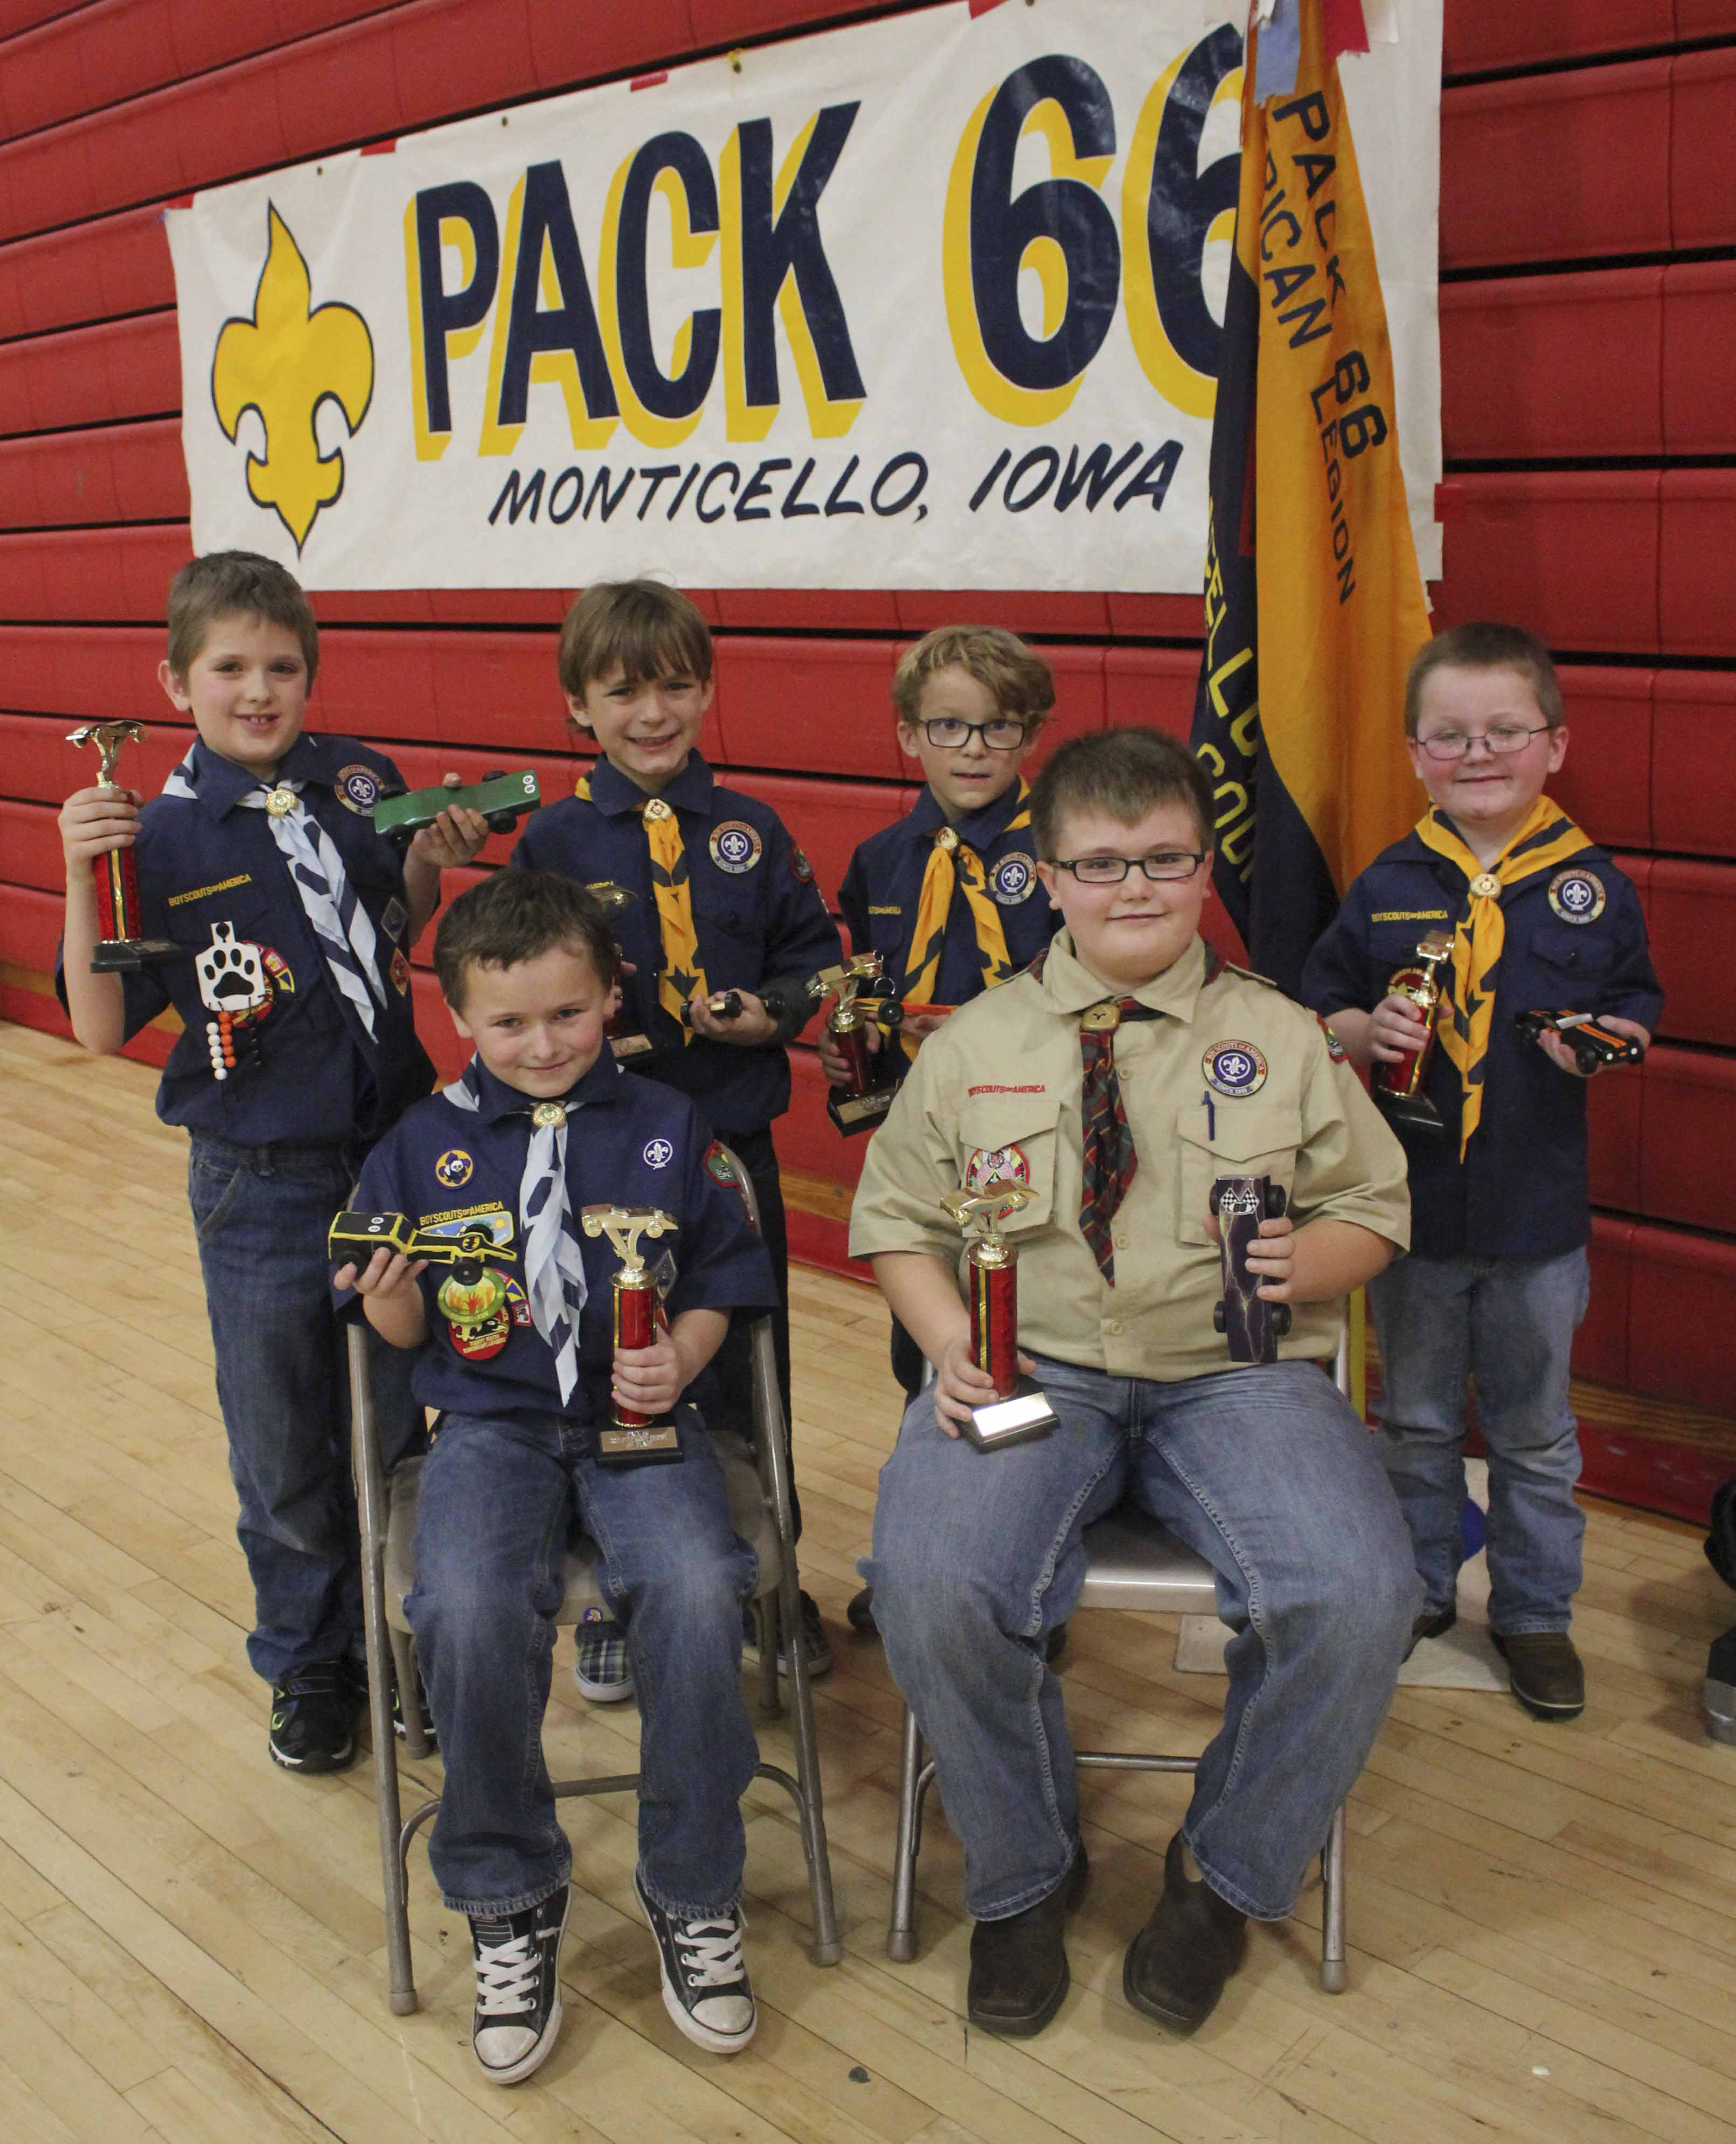 The Pack 66 annual Pinewood Derby was held Saturday, Jan. 21 at Monticello Middle School. Finalists were, first row from left: Brayden Farmer, first place; and Cooper Wickman, second. Second row: Caleb Tubbs, third; Dawson Naylor, fourth; Jaxson Naylor, fifth; and Gage Rickels, sixth. (Photos by Pete Temple)